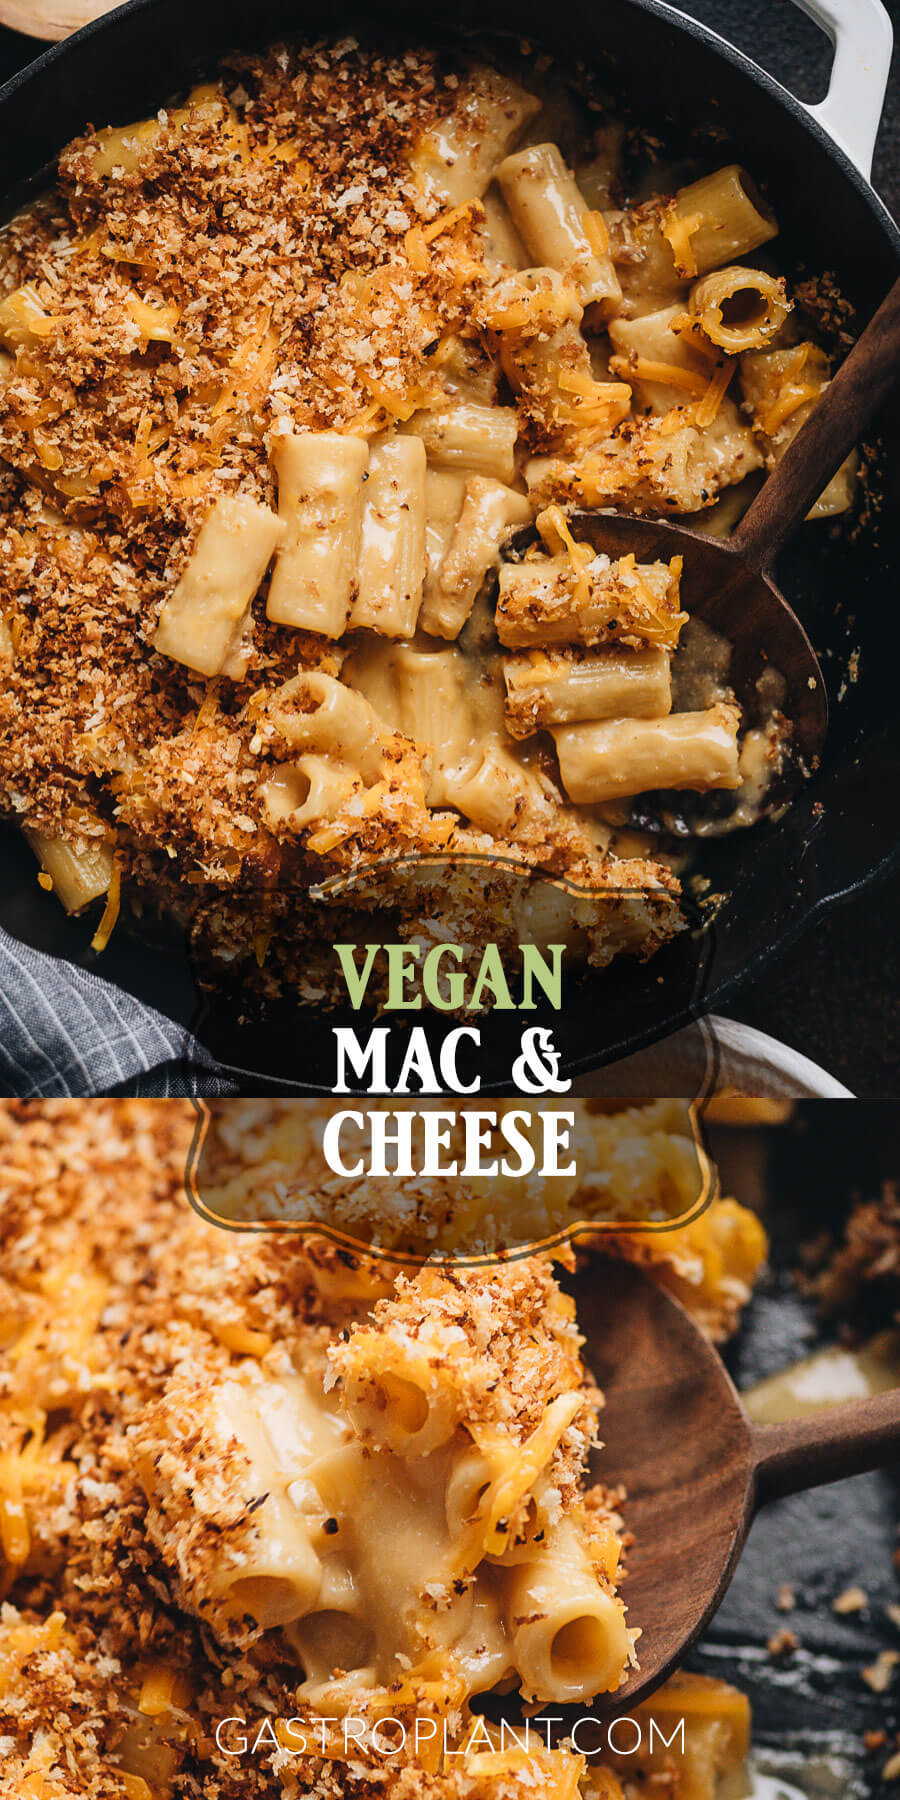 Cheesy baked vegan mac and cheese in a cast-iron skillet